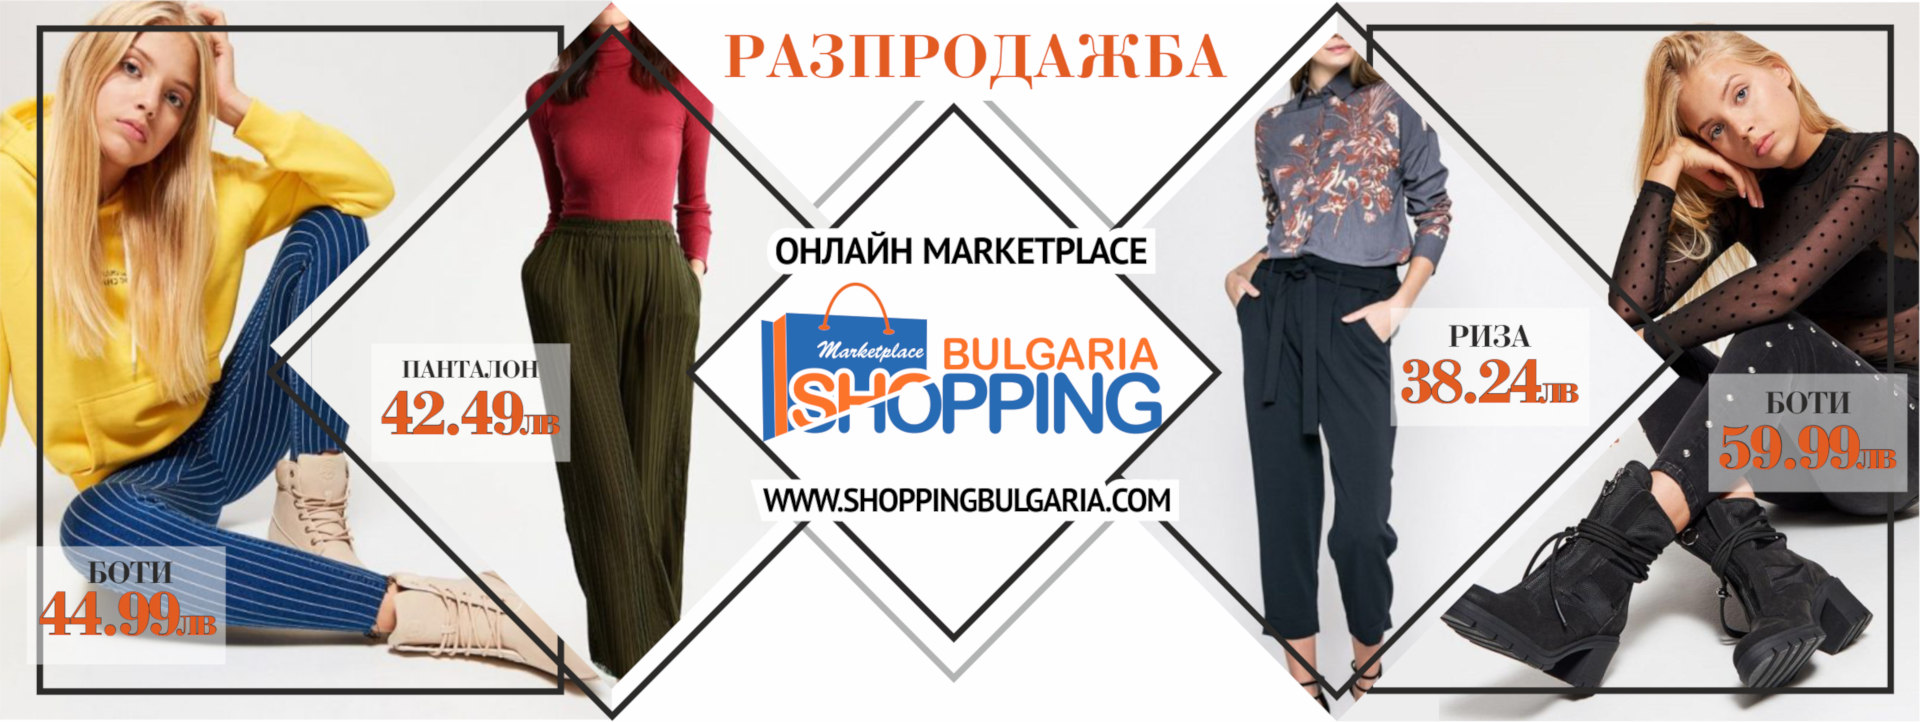 Онлайн Marketplace